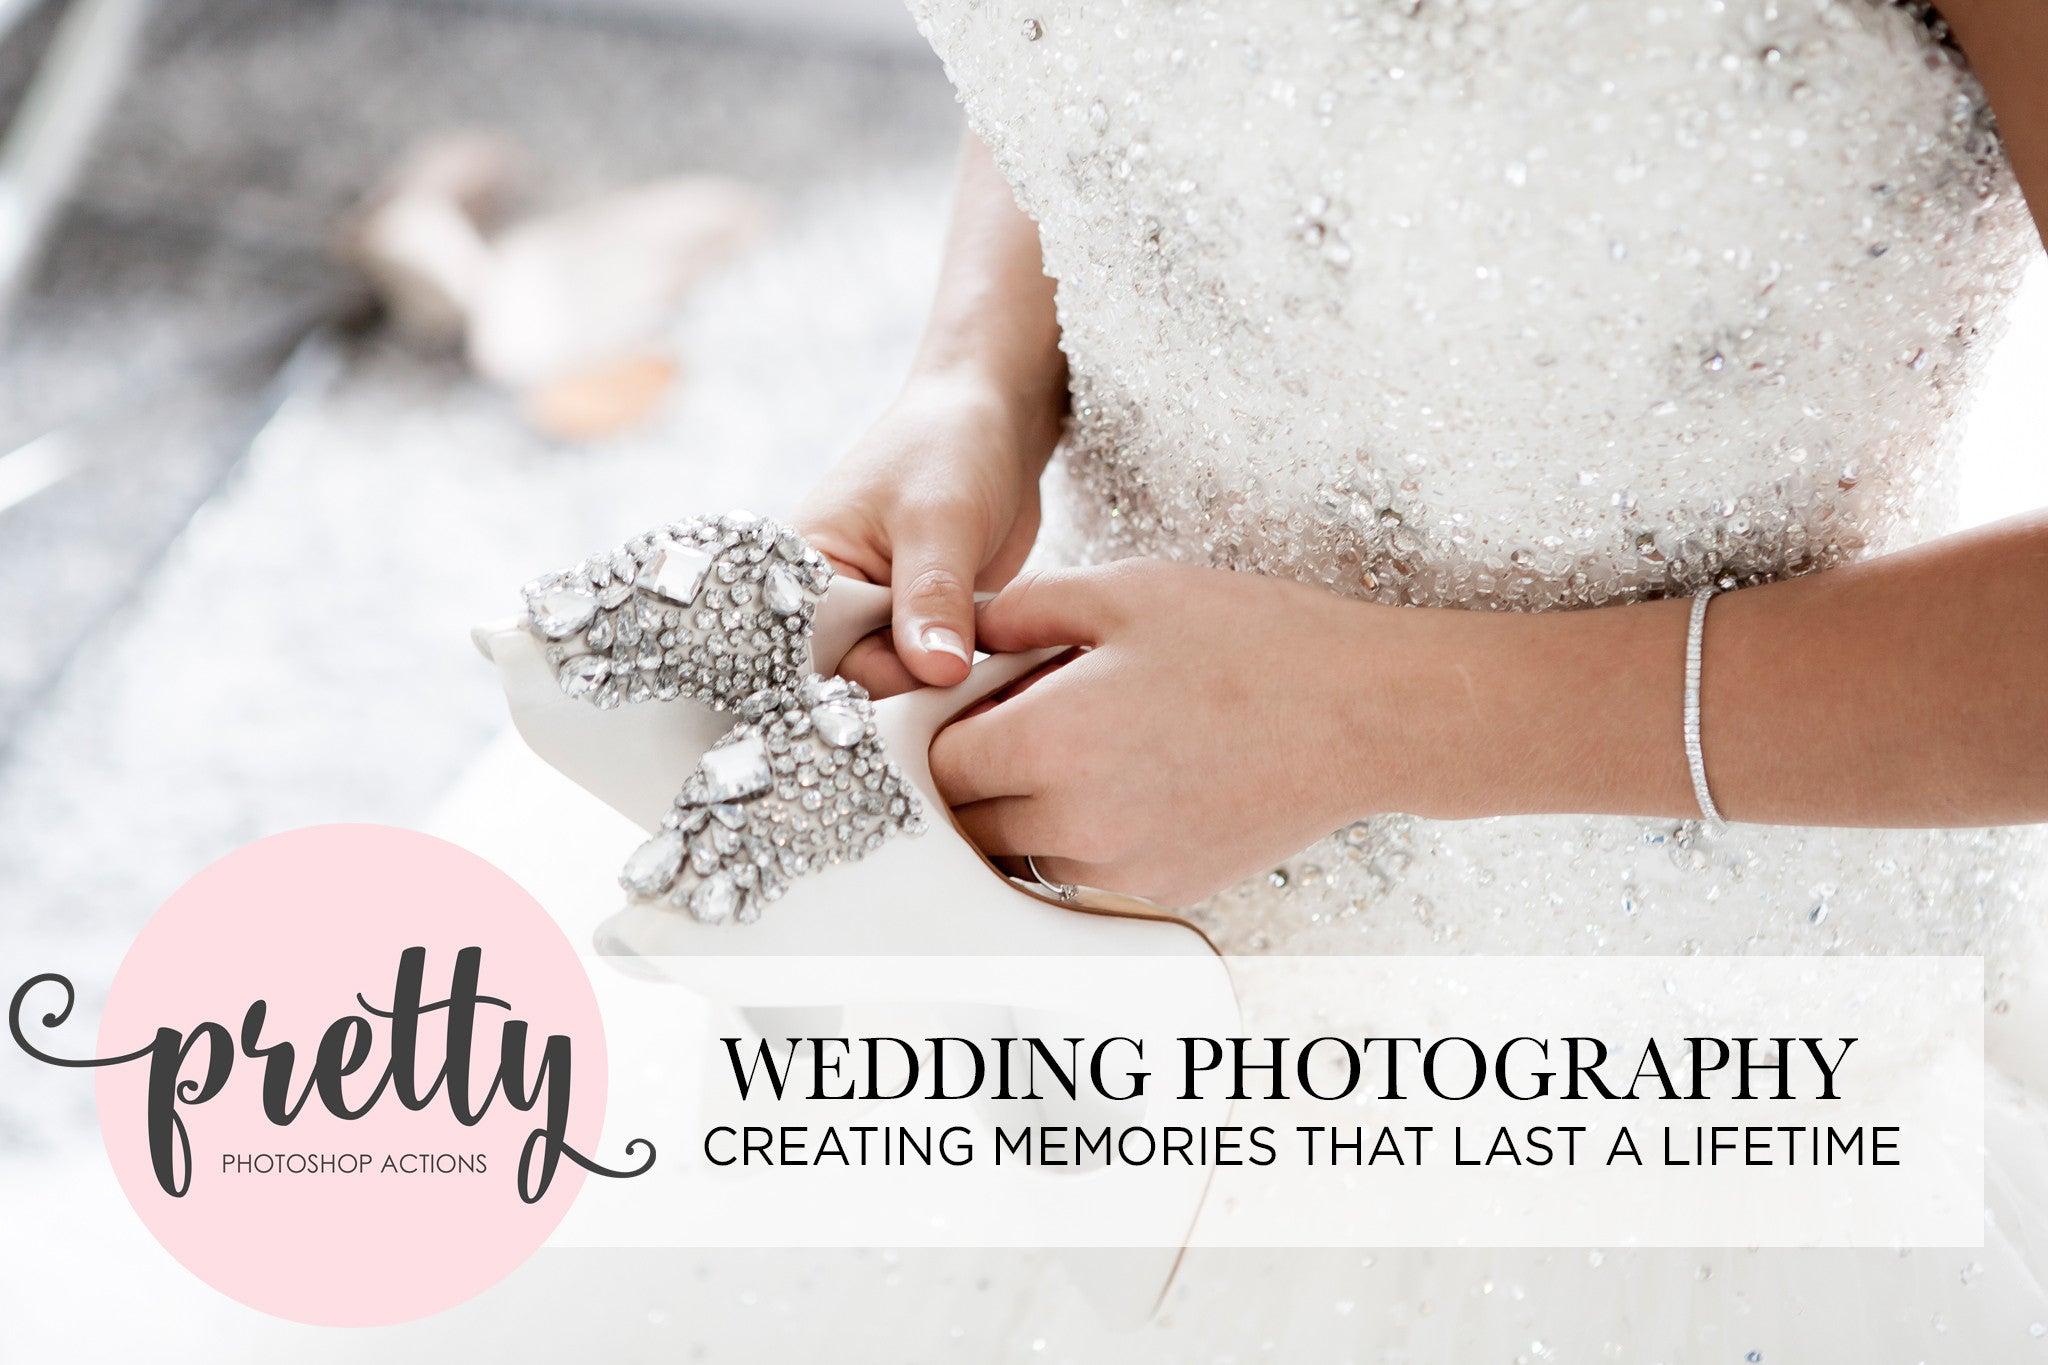 Pretty Photoshop Actions Wedding Photography Tips